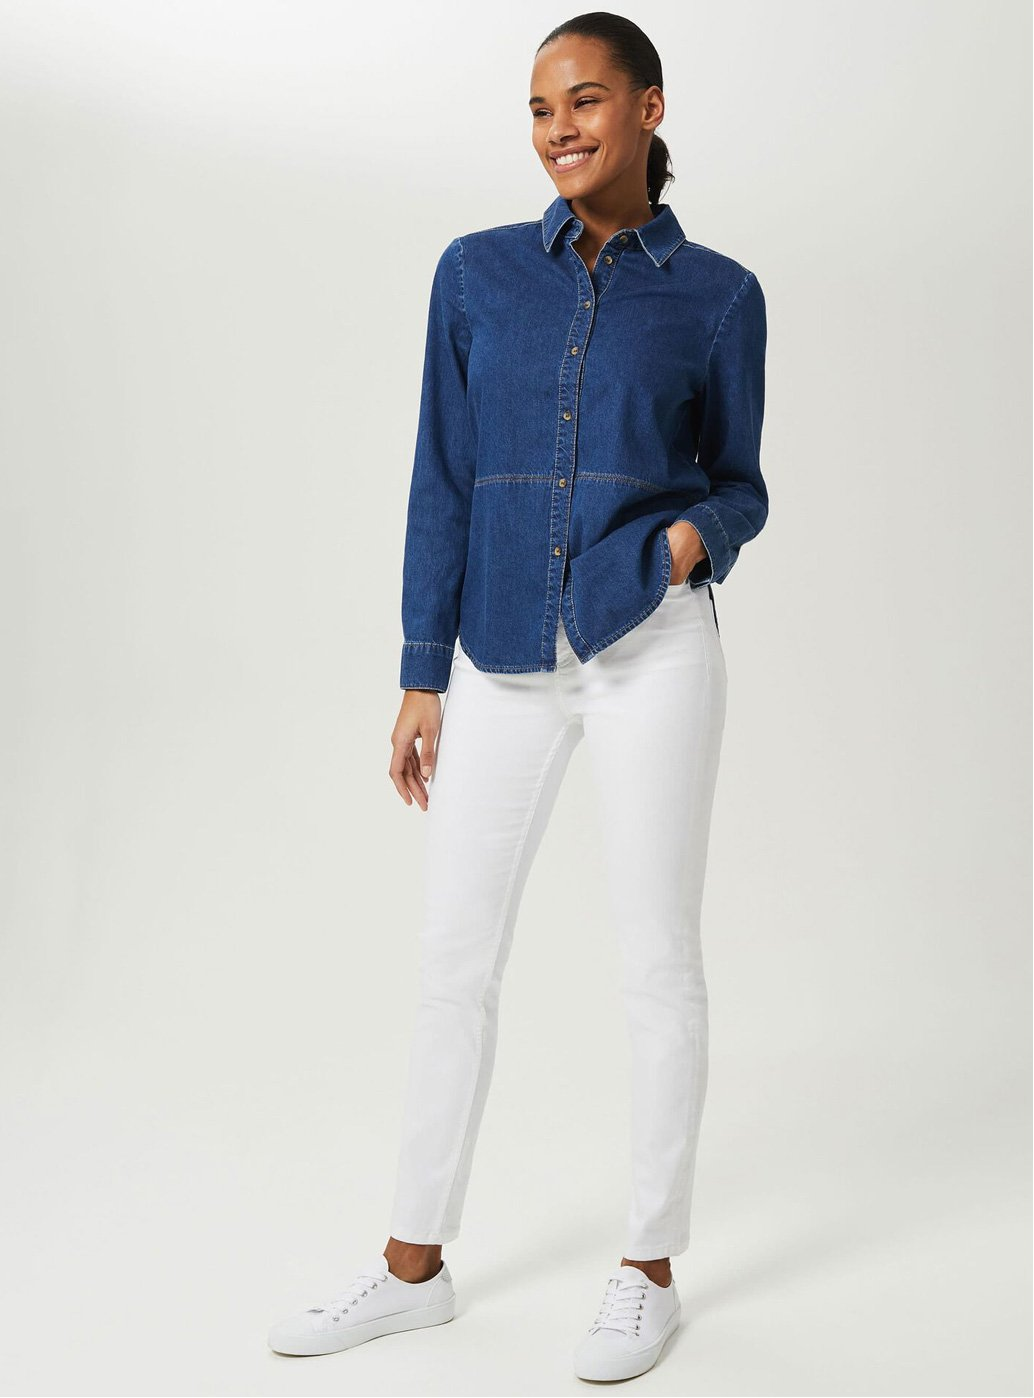 Model wears a blue denim shirt, white jeans and trainers.